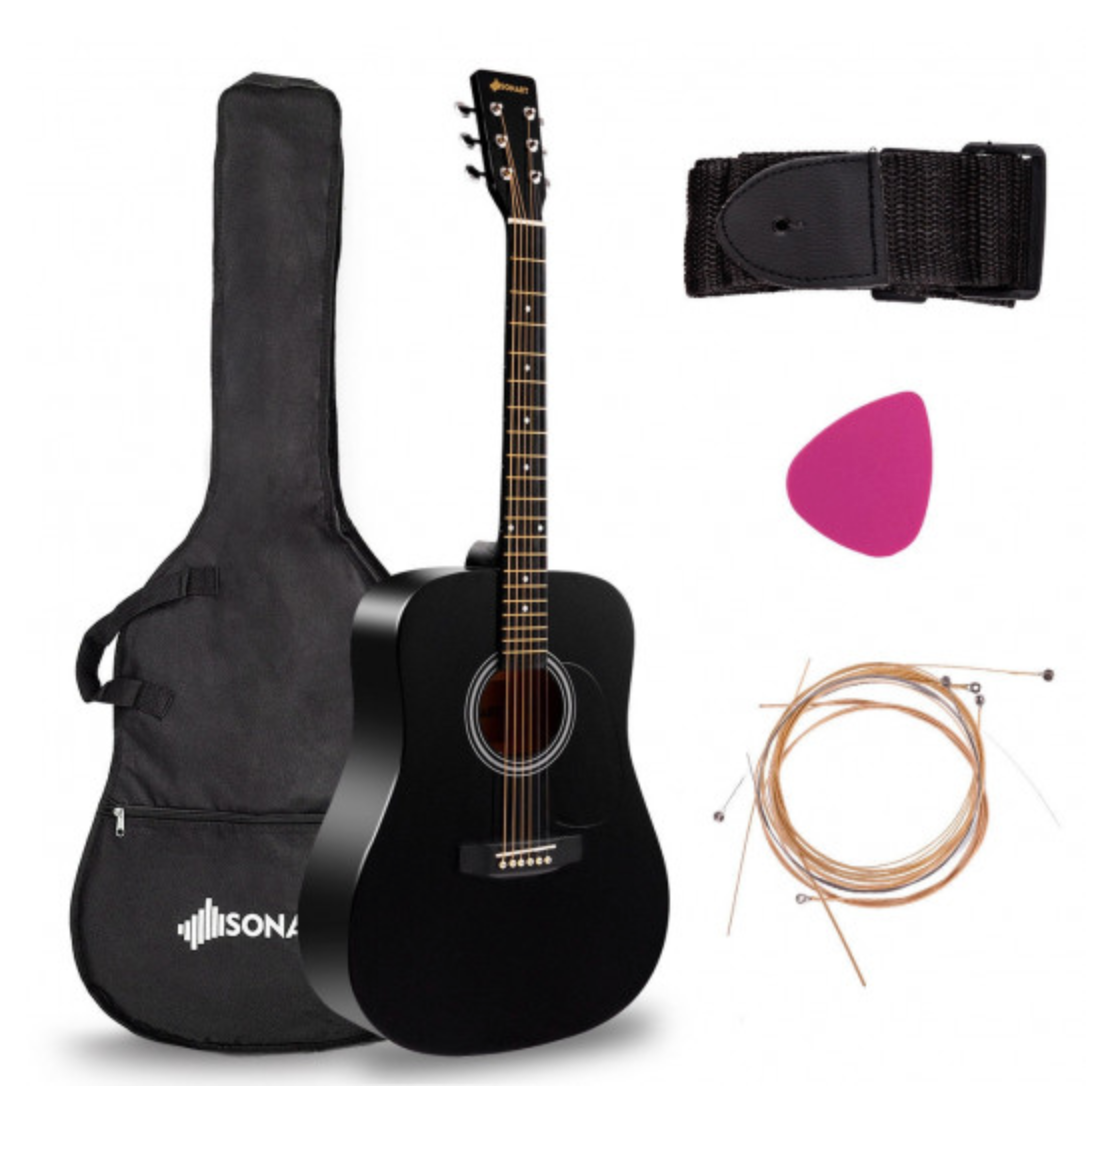 Starter Acoustic Guitar Easy 6 String 41 Inch Wood with Bag And Accessories